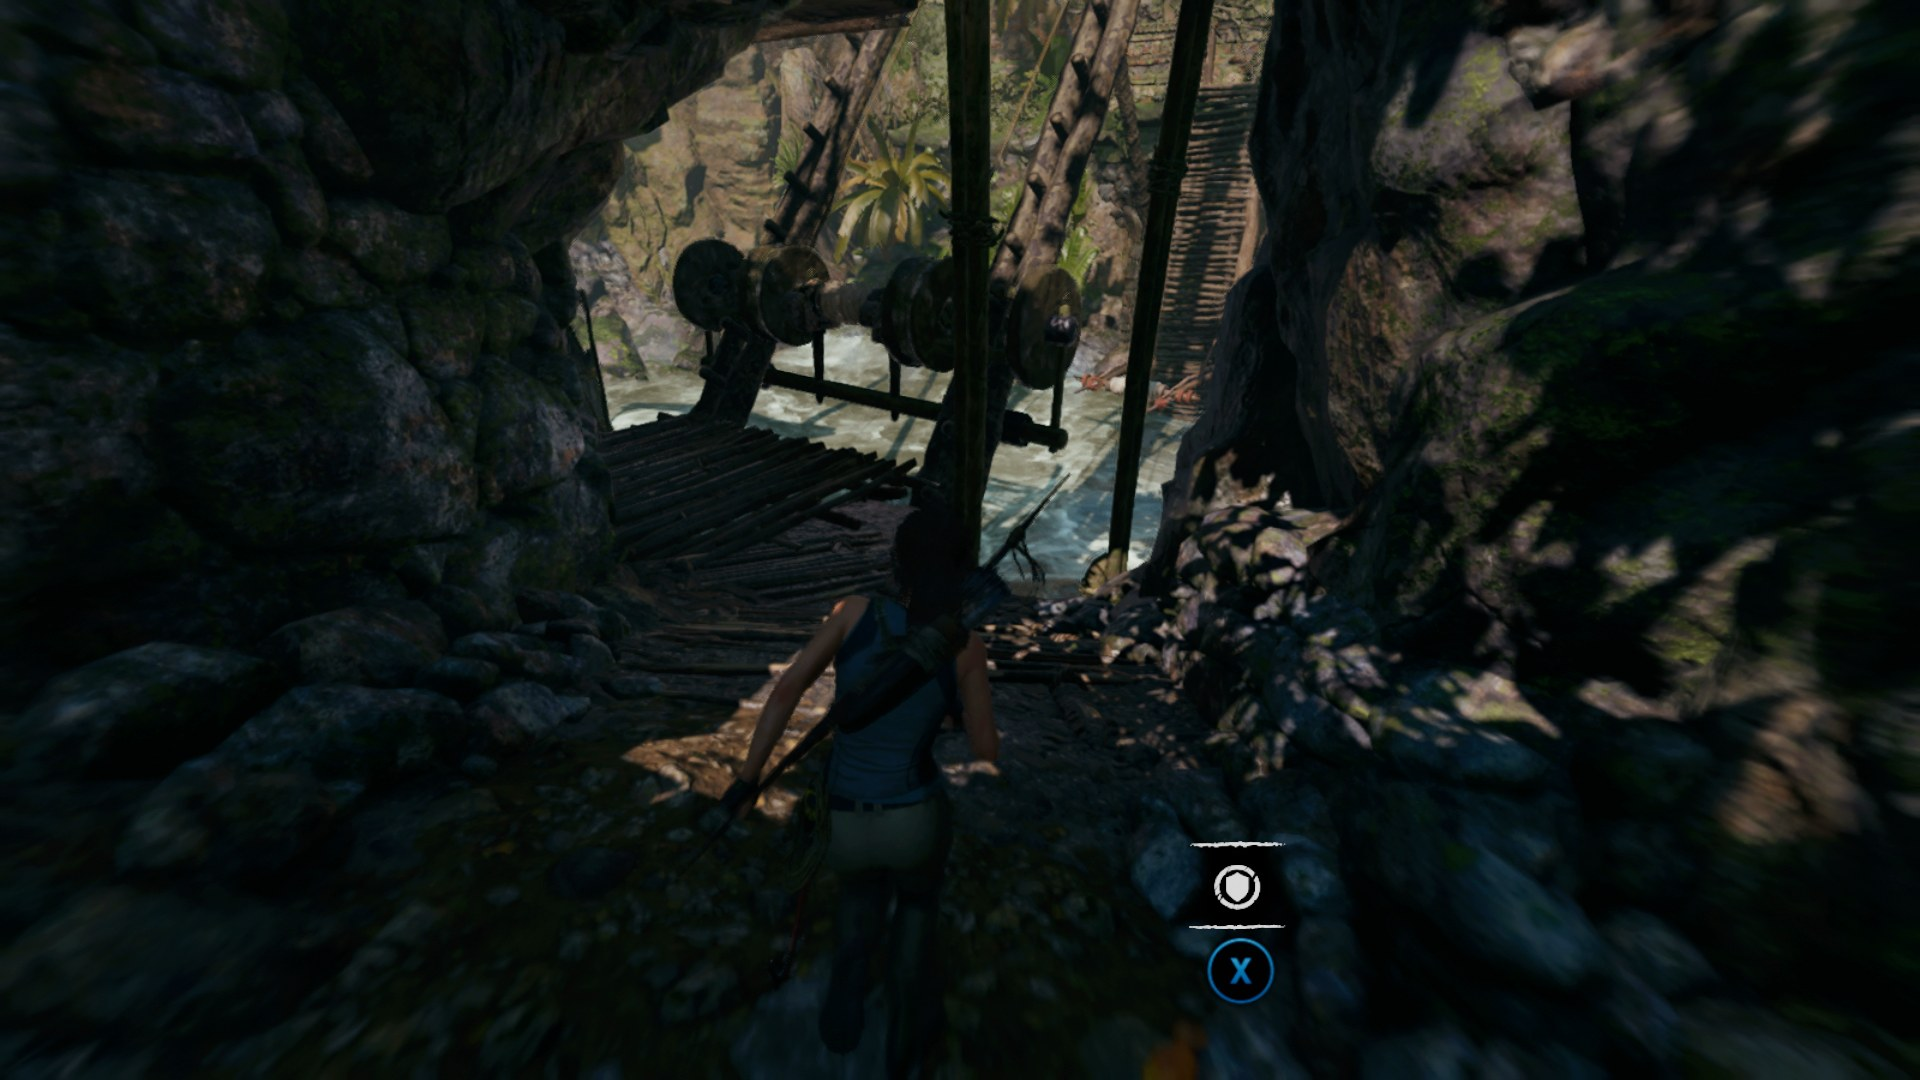 Shadow of the Tomb Raider Bucket Puzzle Guide - How to Solve the